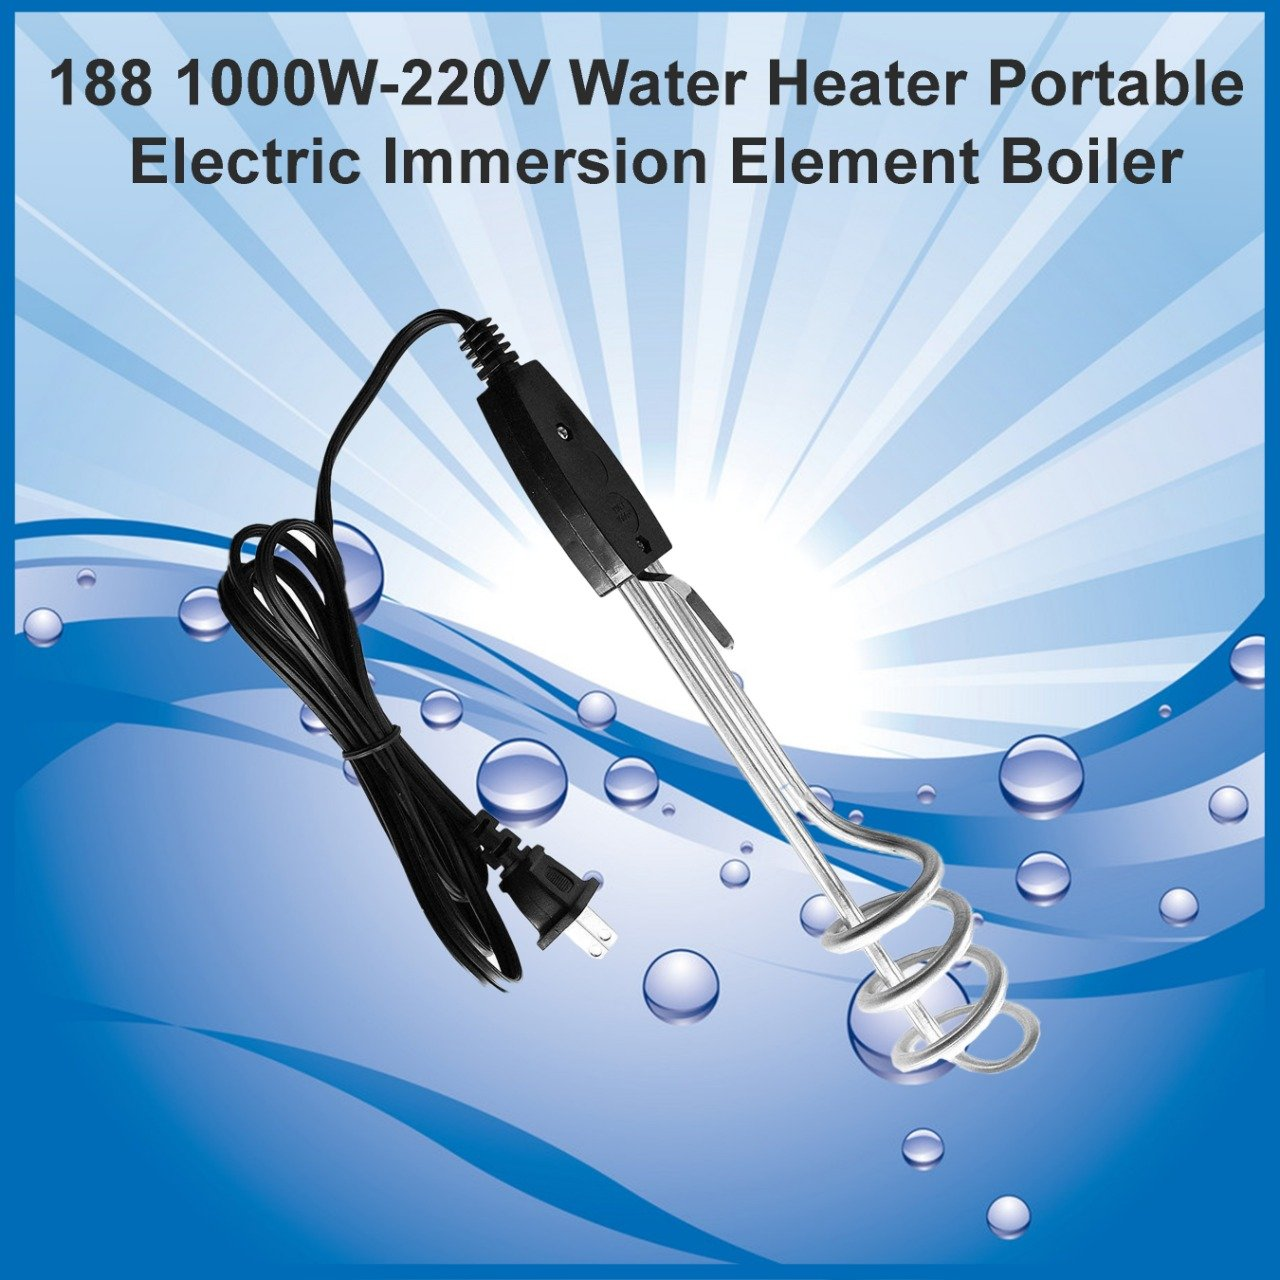 188 1000W-220V Water Heater Portable Electric Immersion Element Boiler